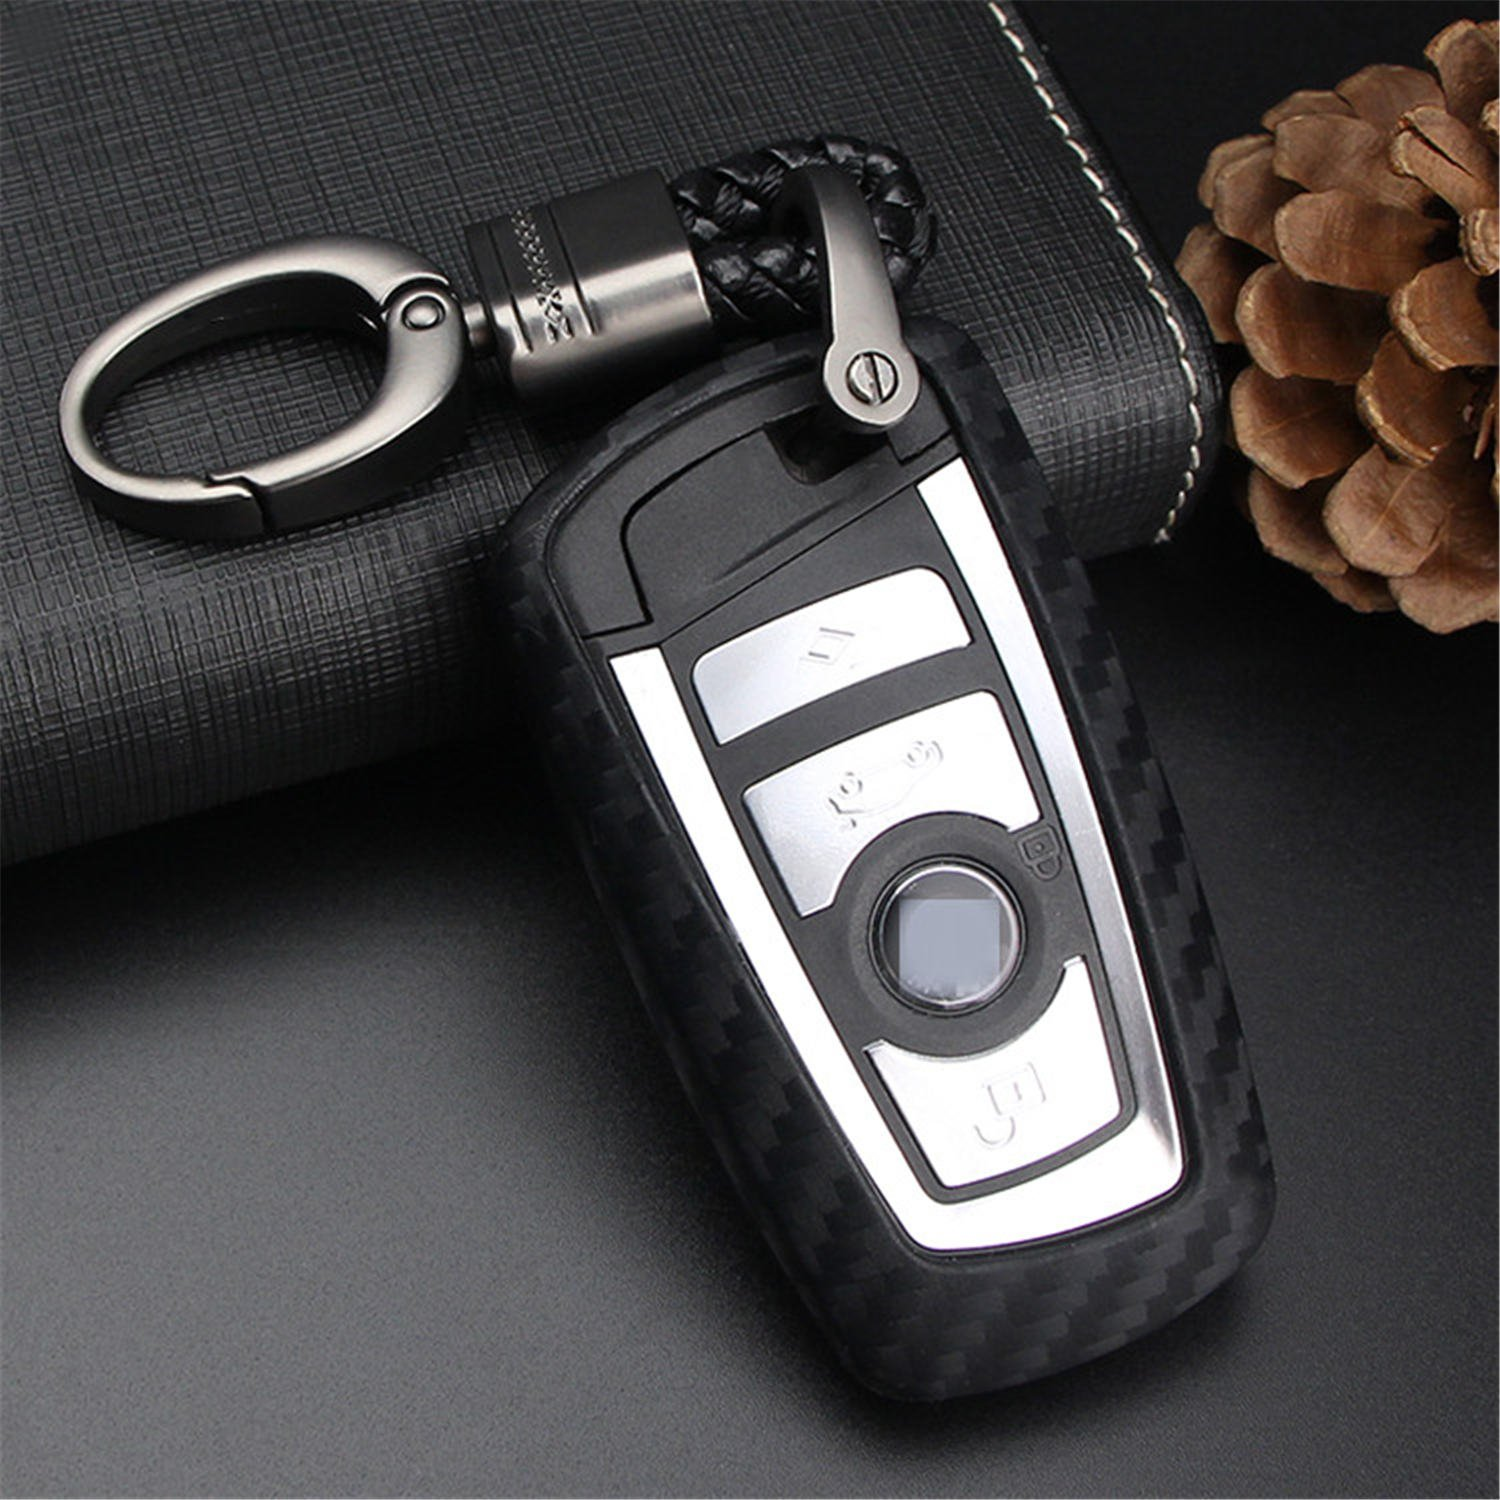 M.JVisun Soft Silicone Rubber Carbon Fiber Texture Cover Protector for BMW Key Fob, Car Remote Key Fob Case for BMW 1-Series 2 3 4 5 6 7 Series X3 X4 M2 M3 M4 M5 M6 - Black - Weave Keychain